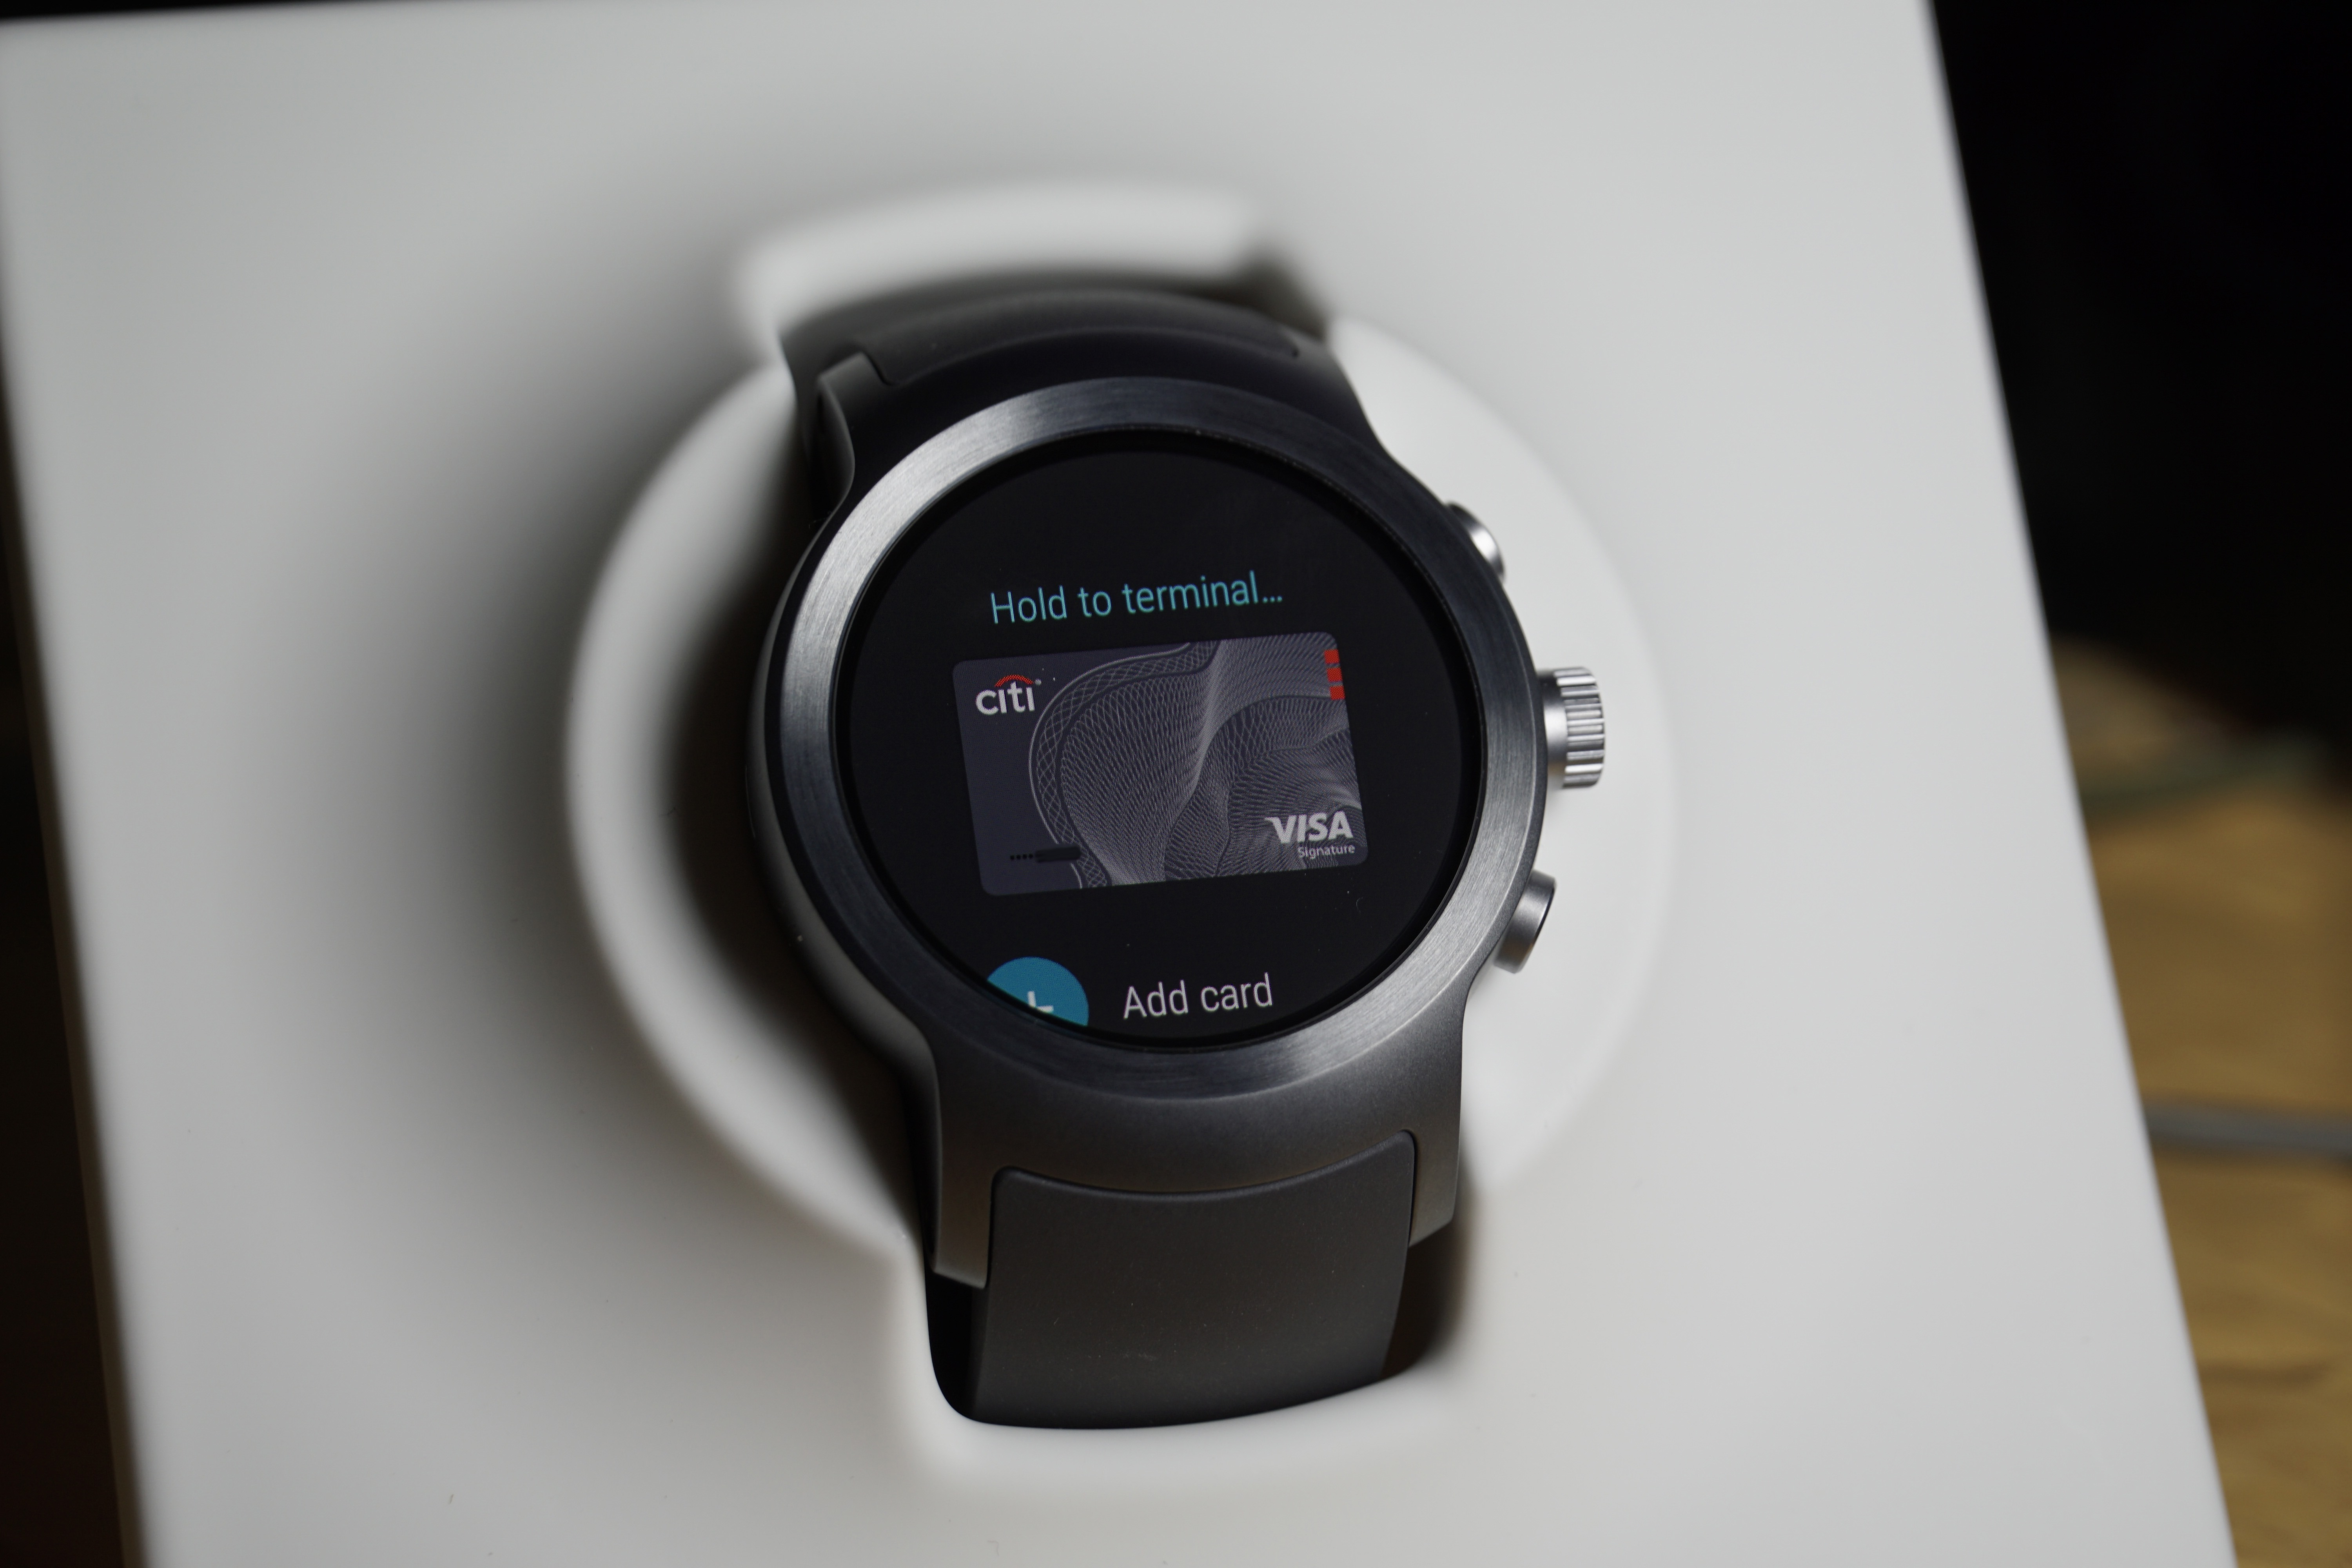 Android Pay for Wear smartwatches doesn't work if your phone has an